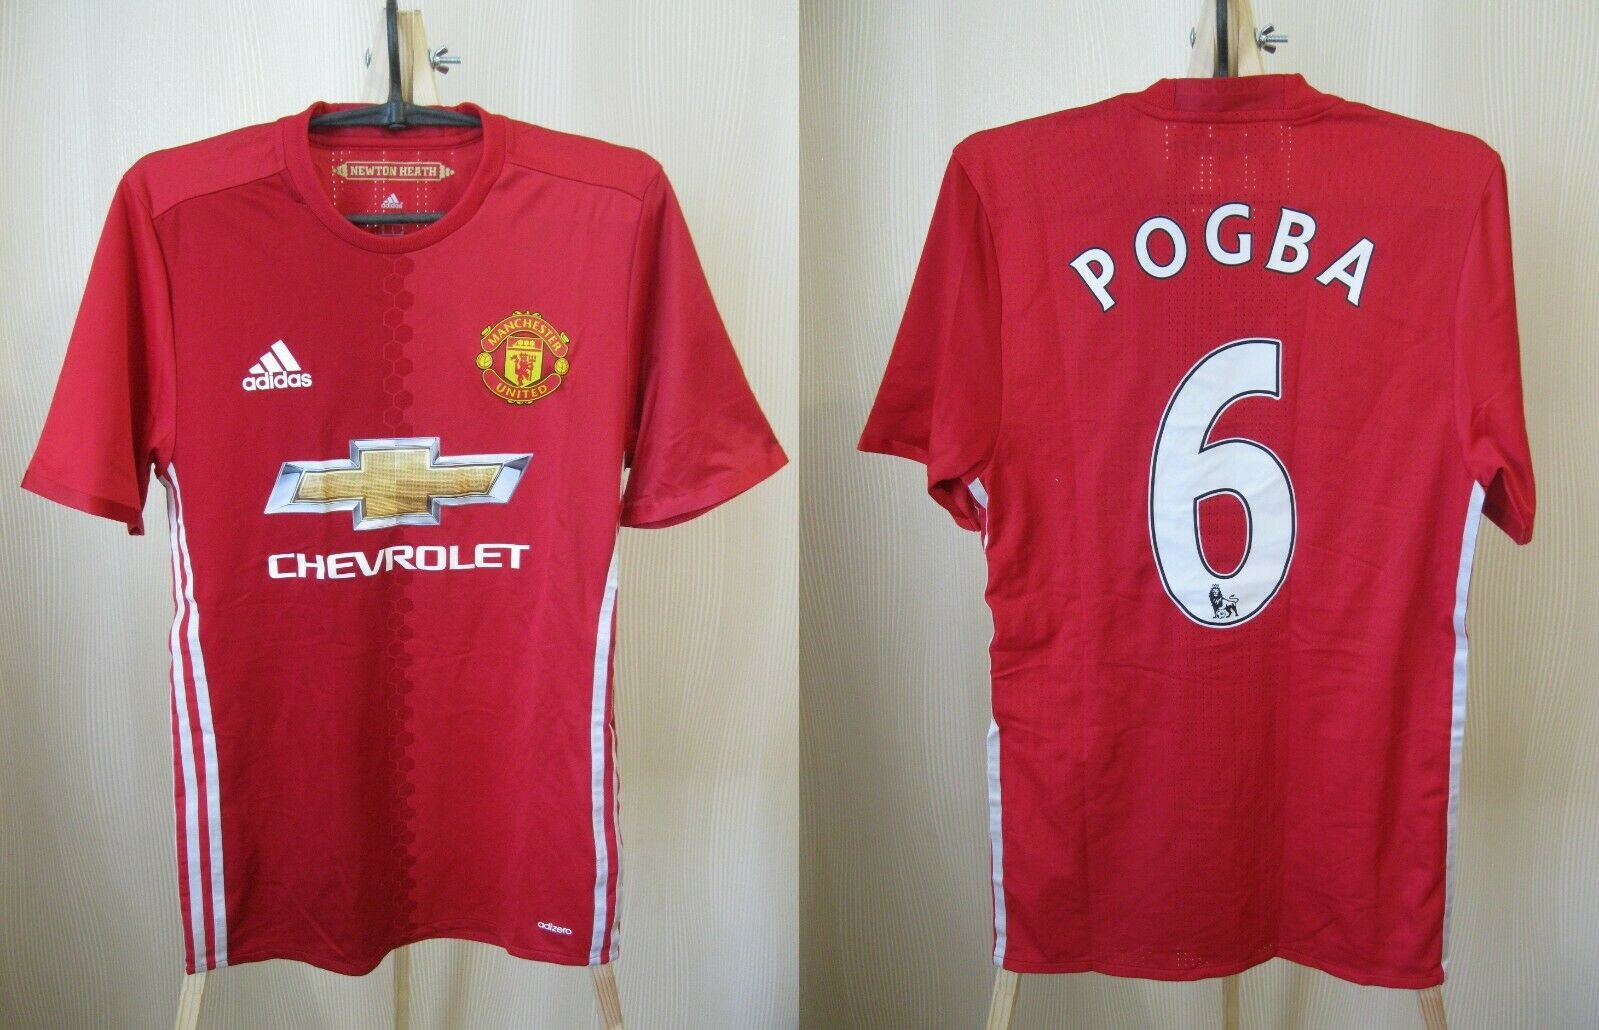 Manchester United #6 Pogba 2016/2017 Home S Adidas AI6719 jersey